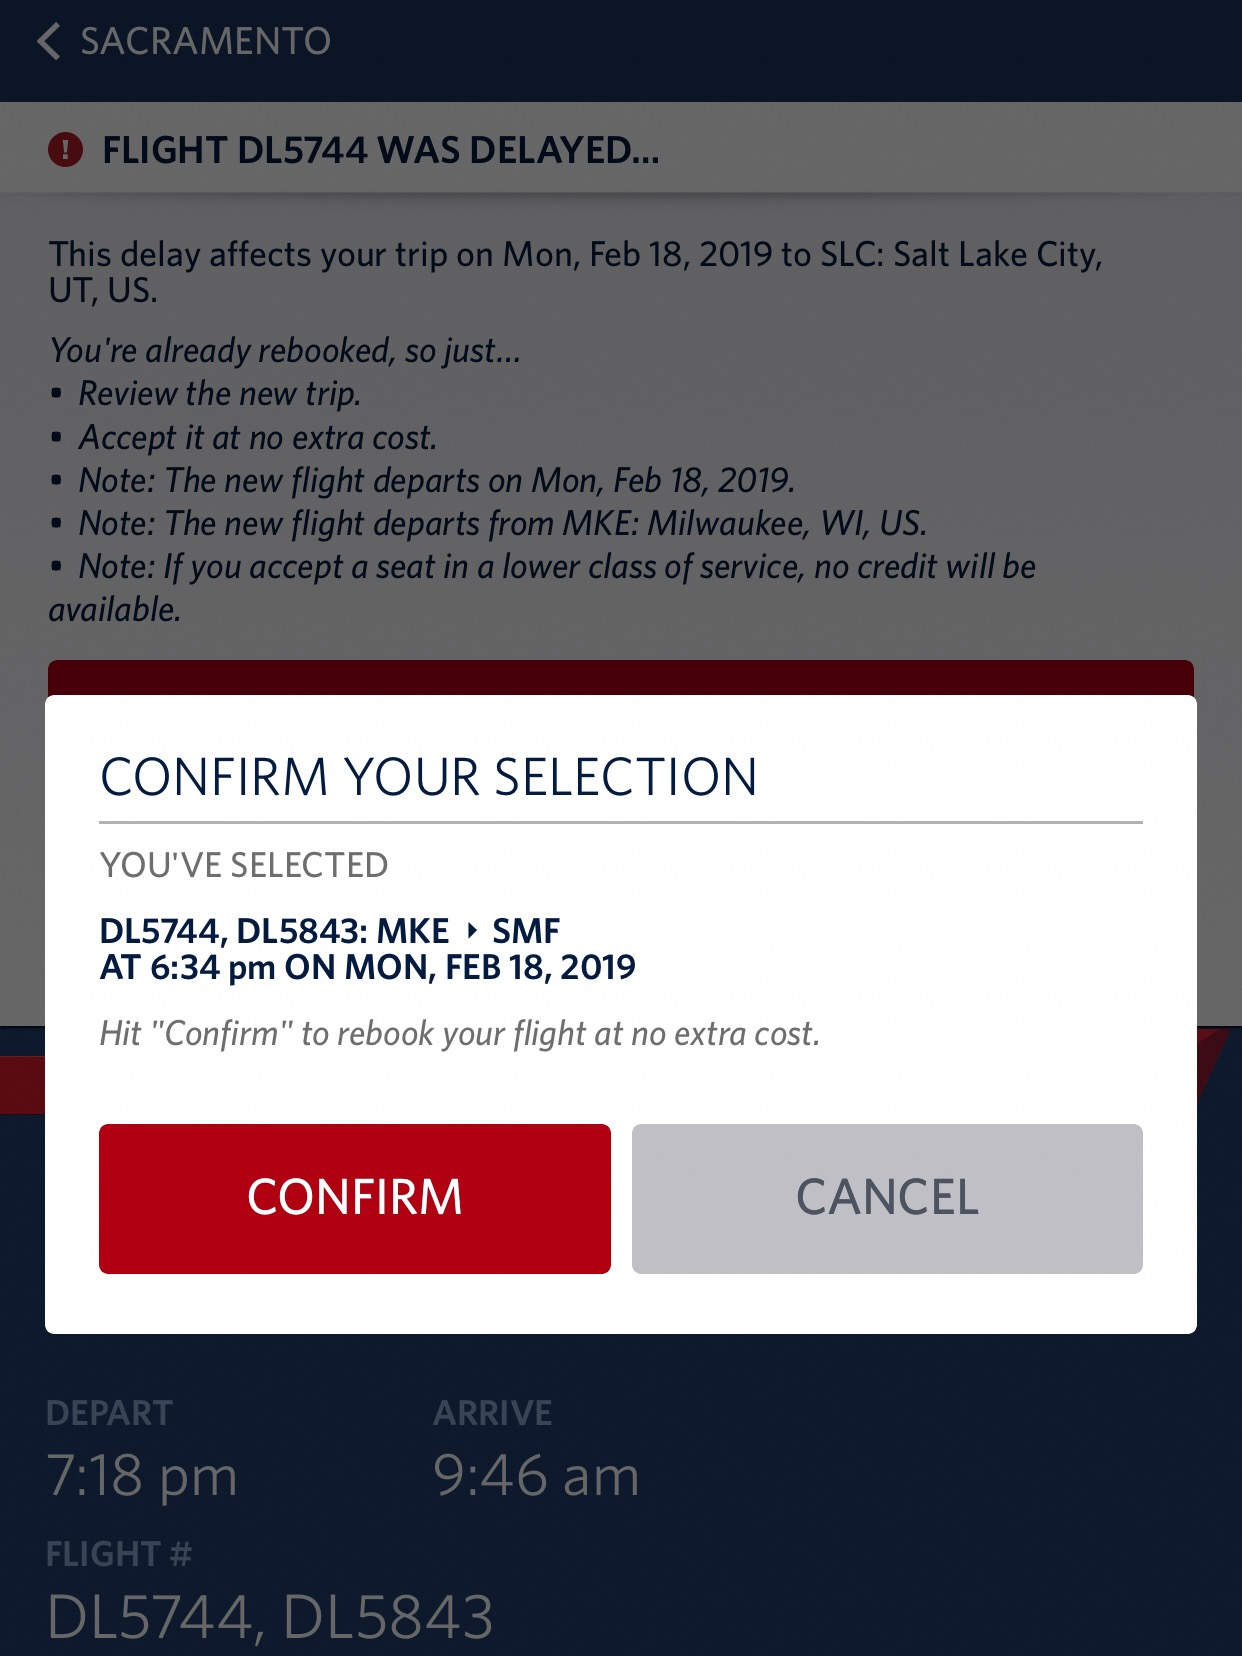 Once you select your new flight, you're asked to confirm your option before you're rebooked.